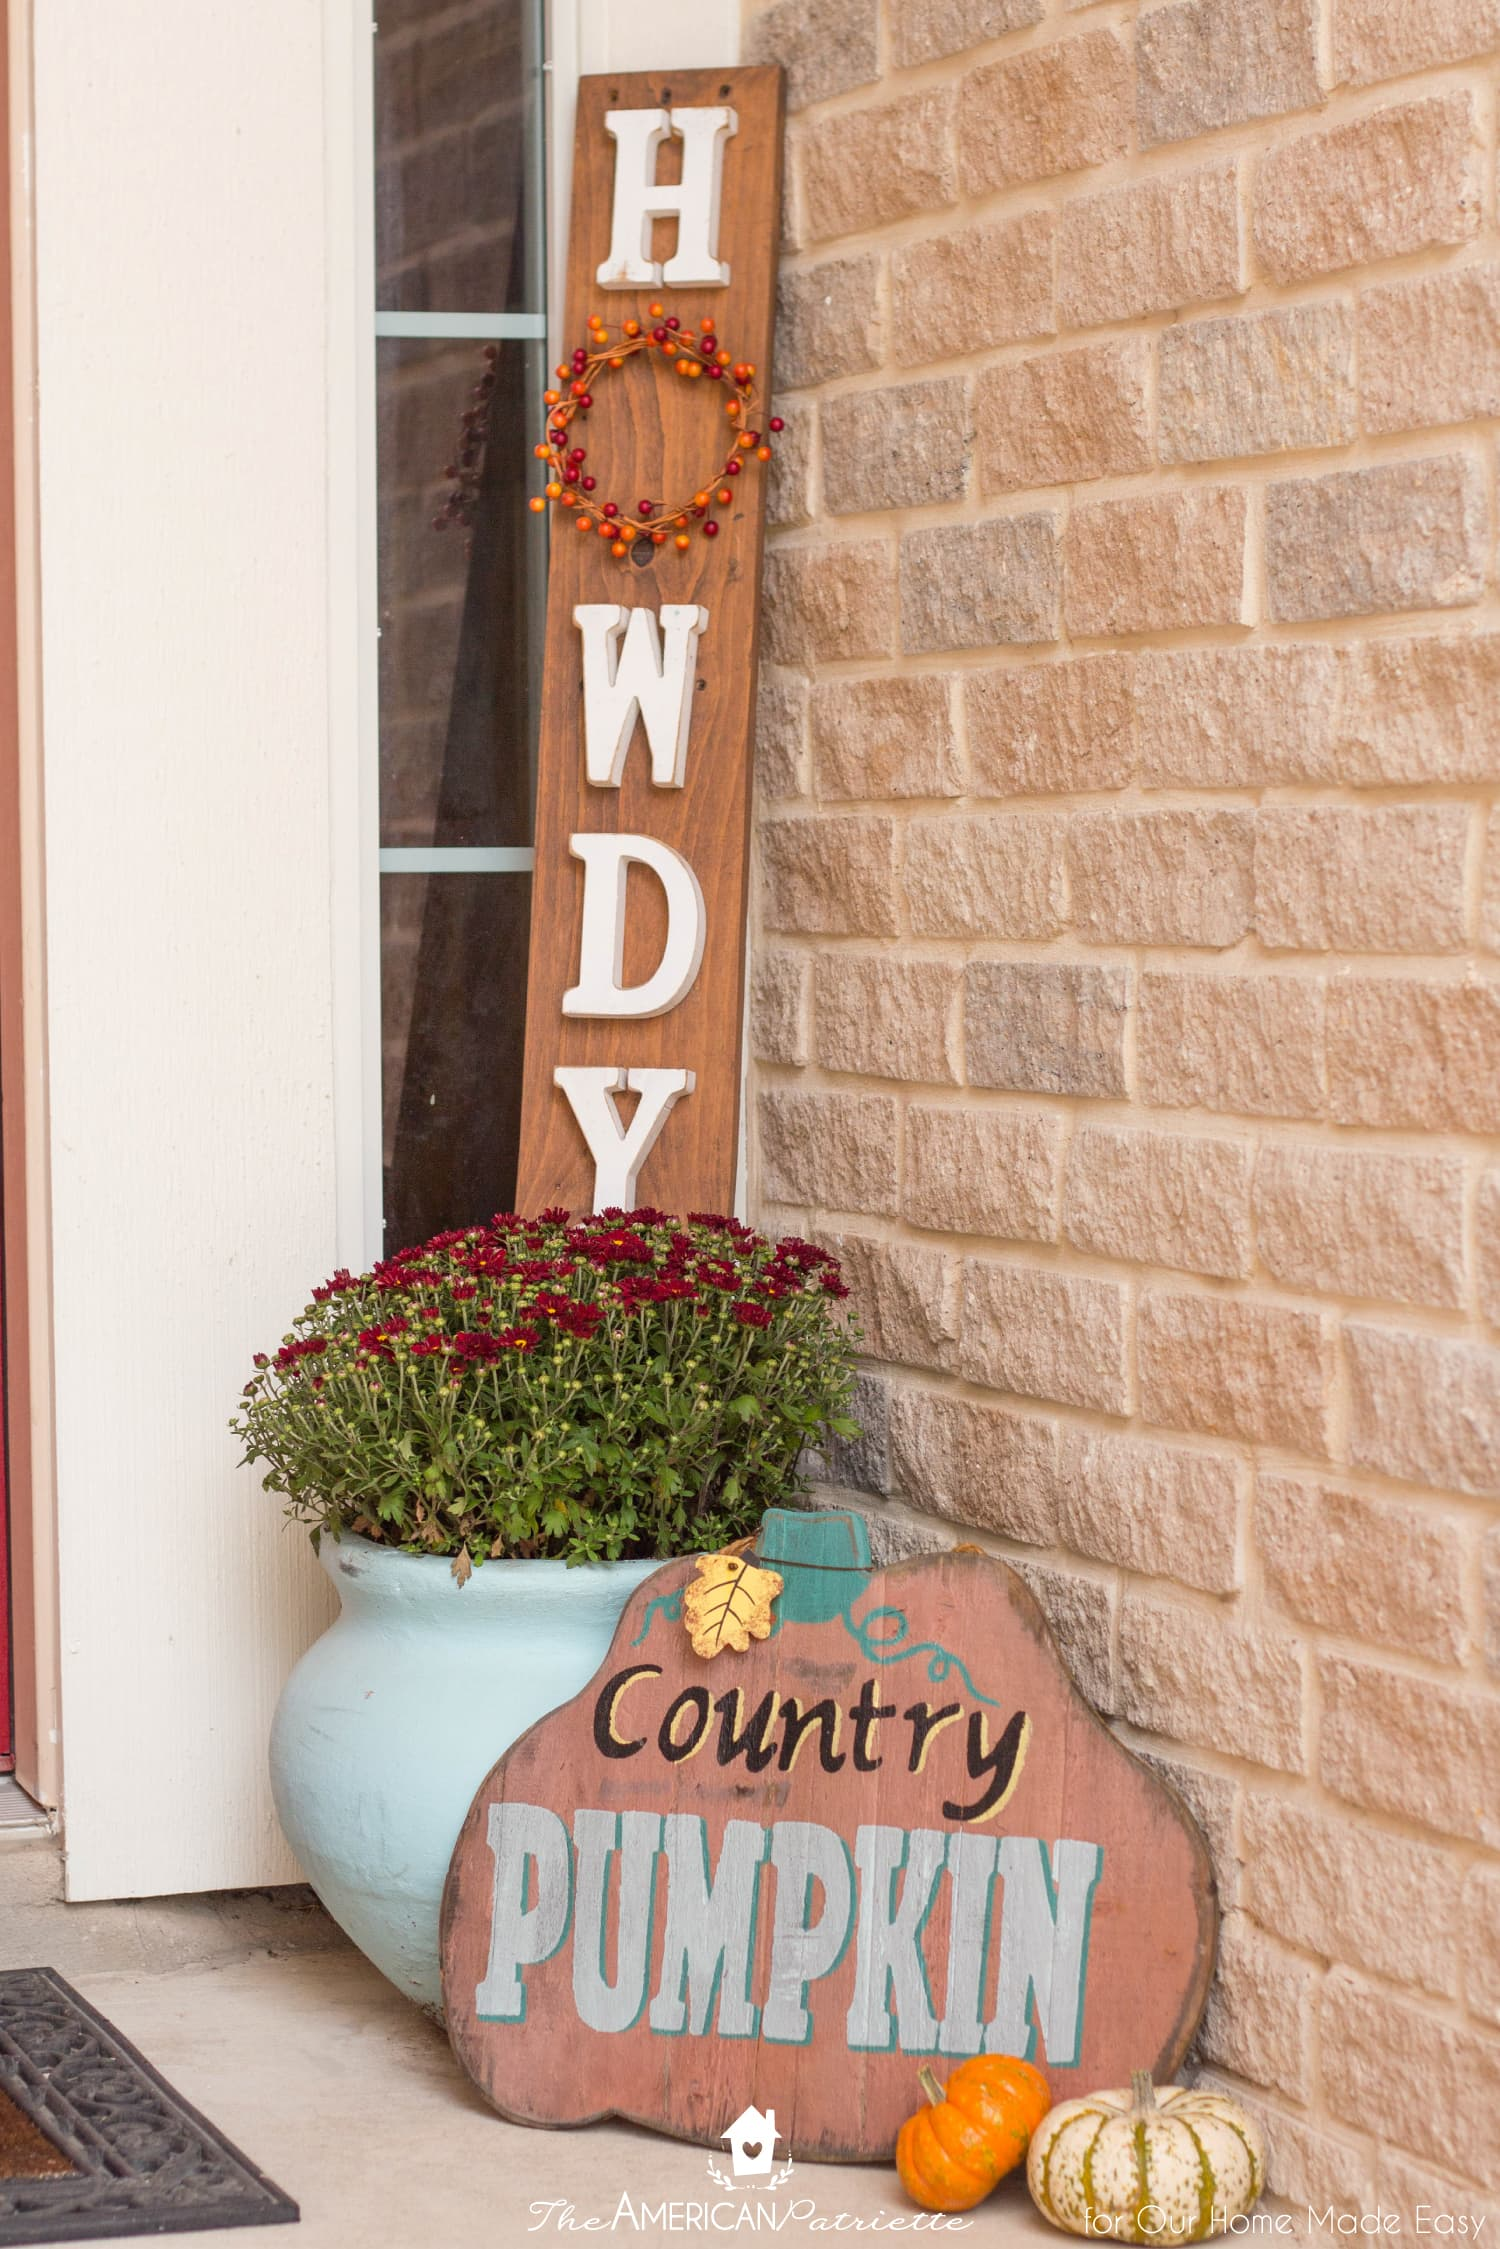 Seasonal signs are simple ways to add color to your front porch decor